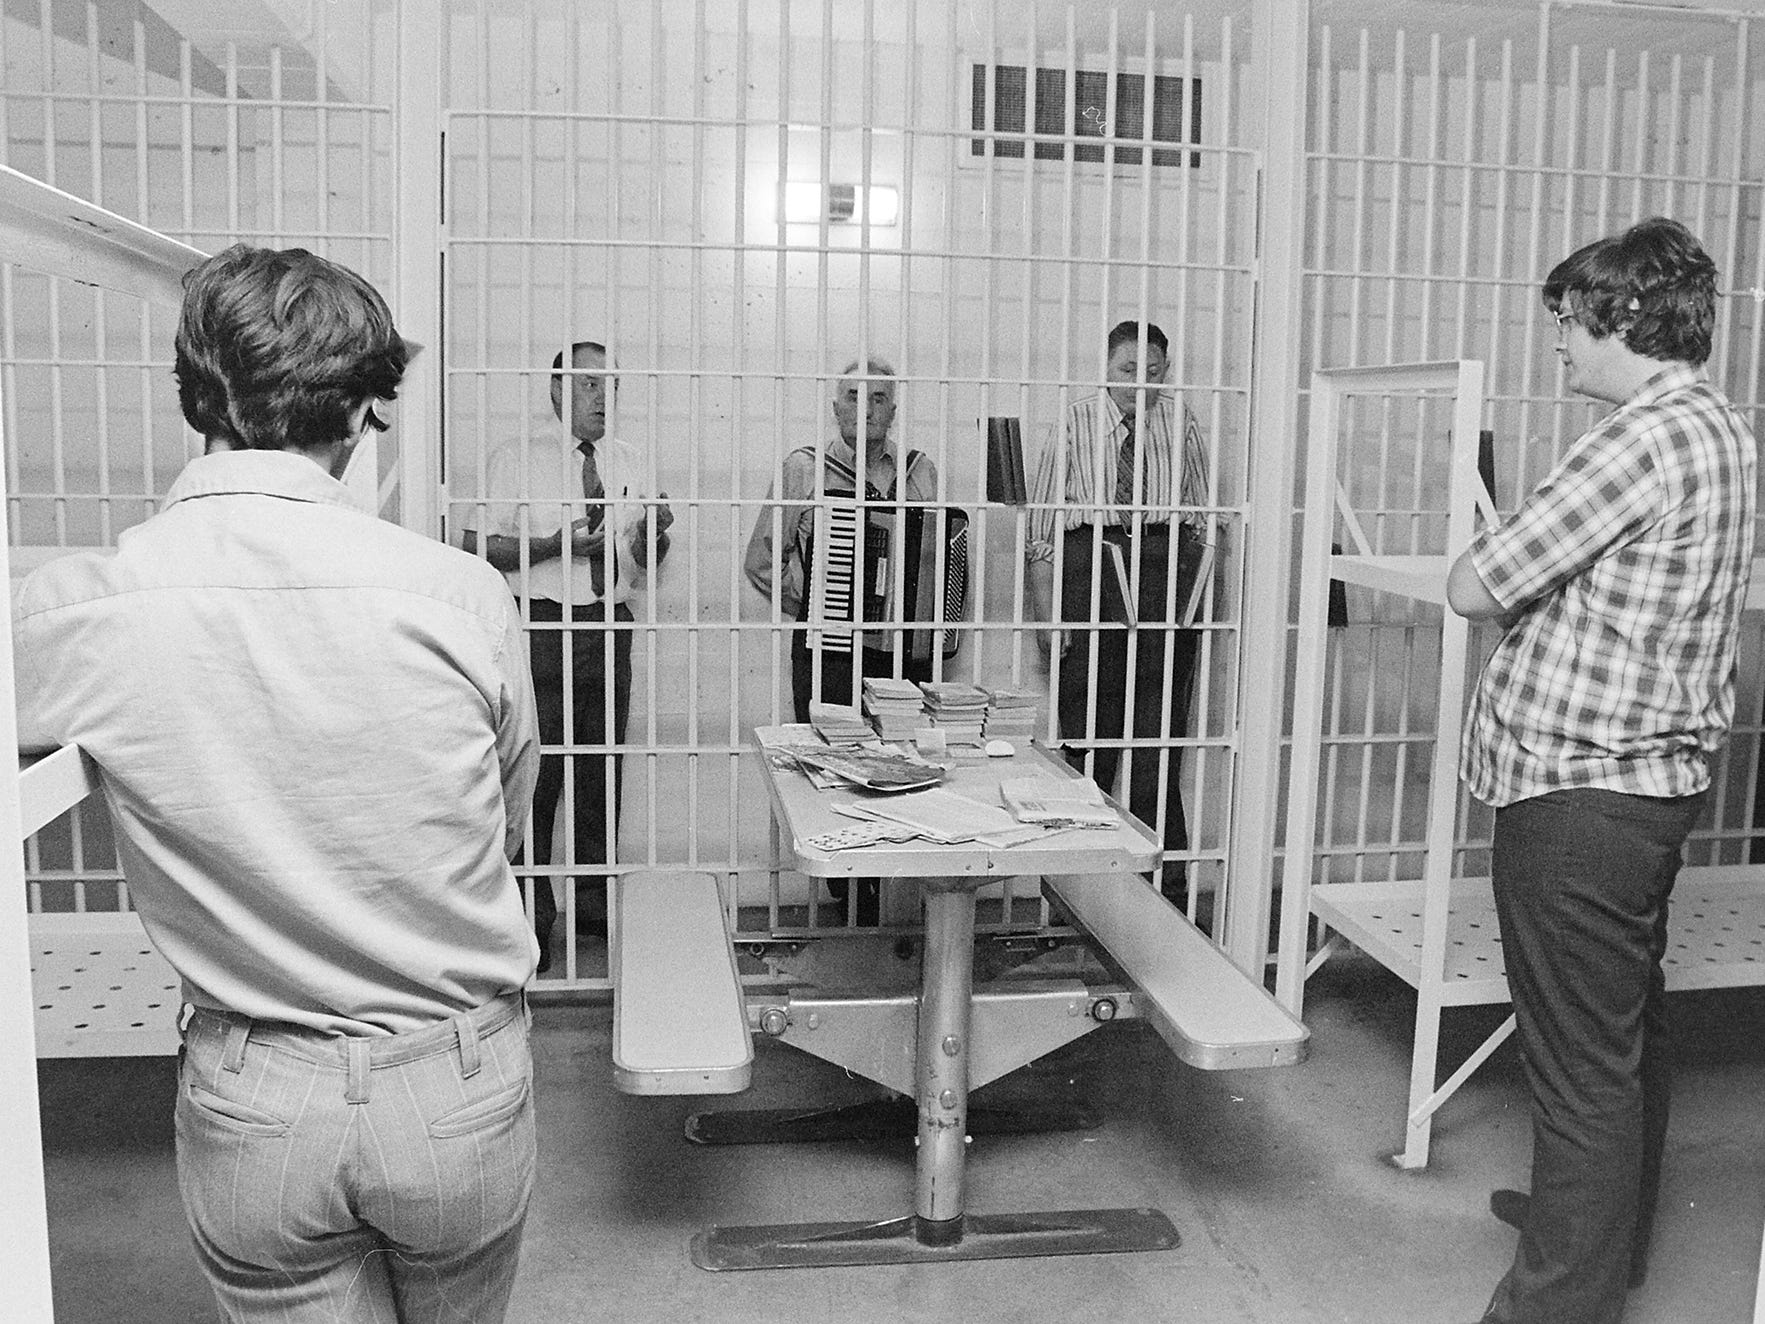 08/13/73